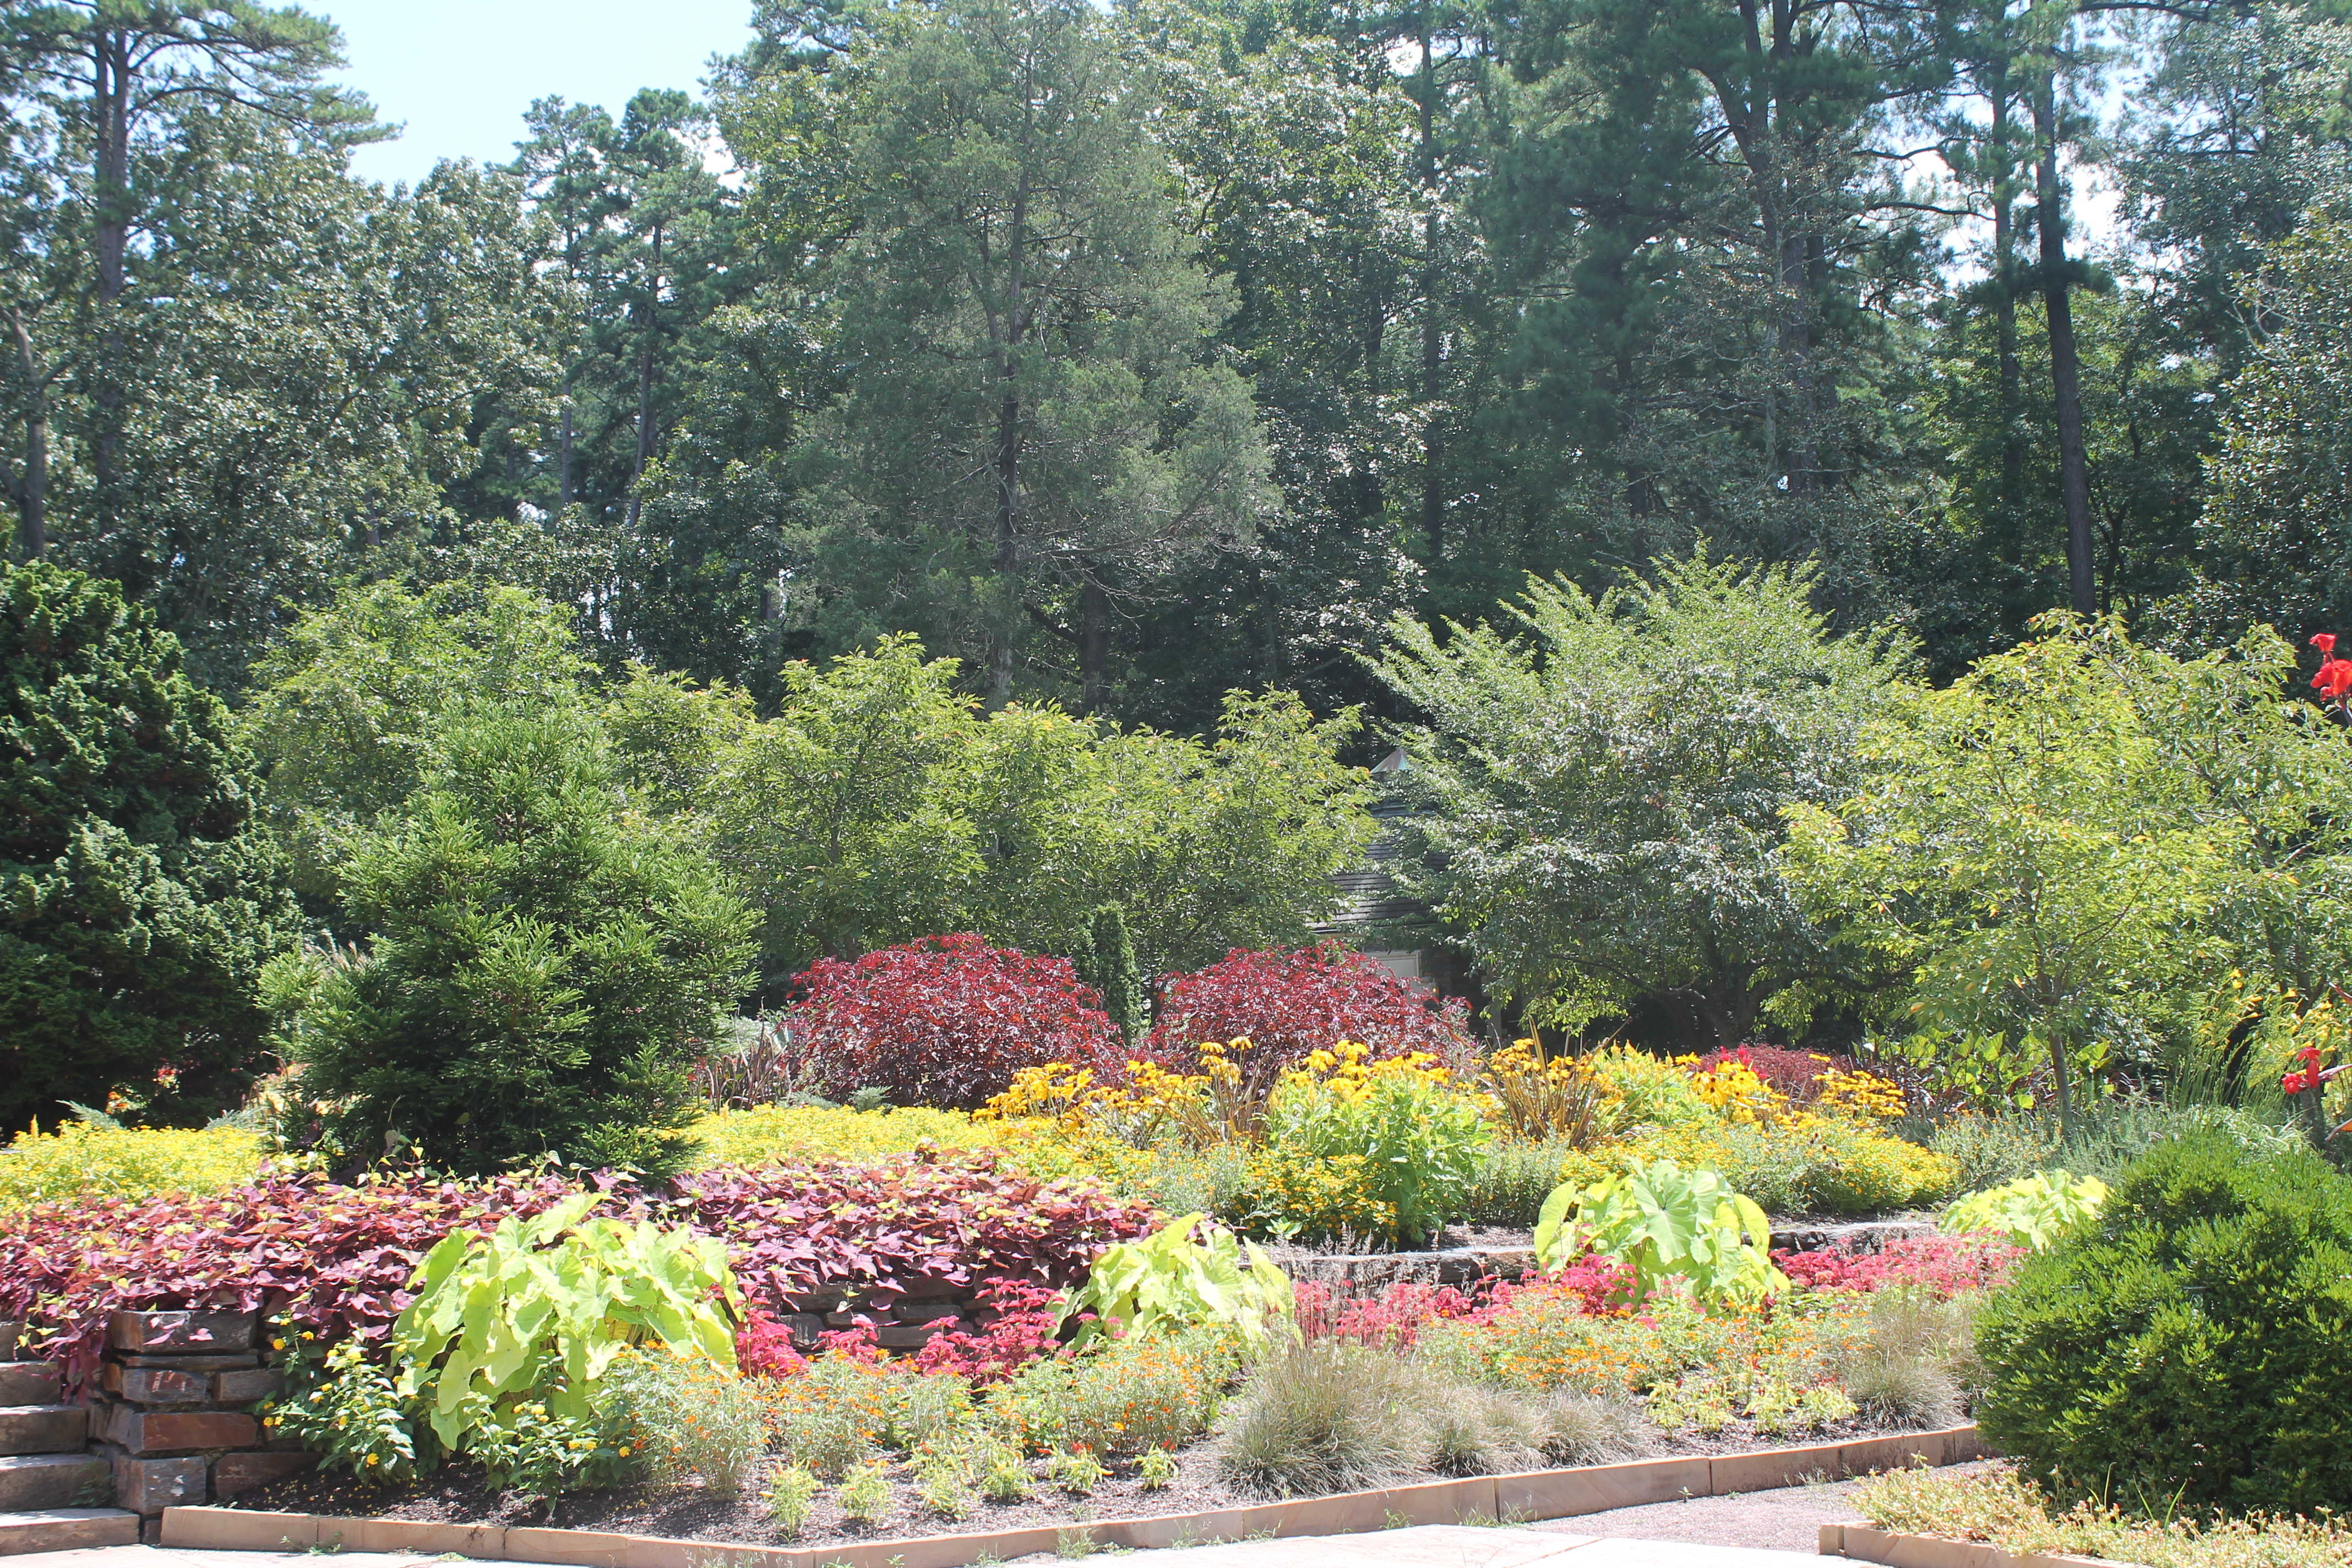 The wildlife garden in the h l blomquist garden of native plants - Colorful Blooms At The Gardens